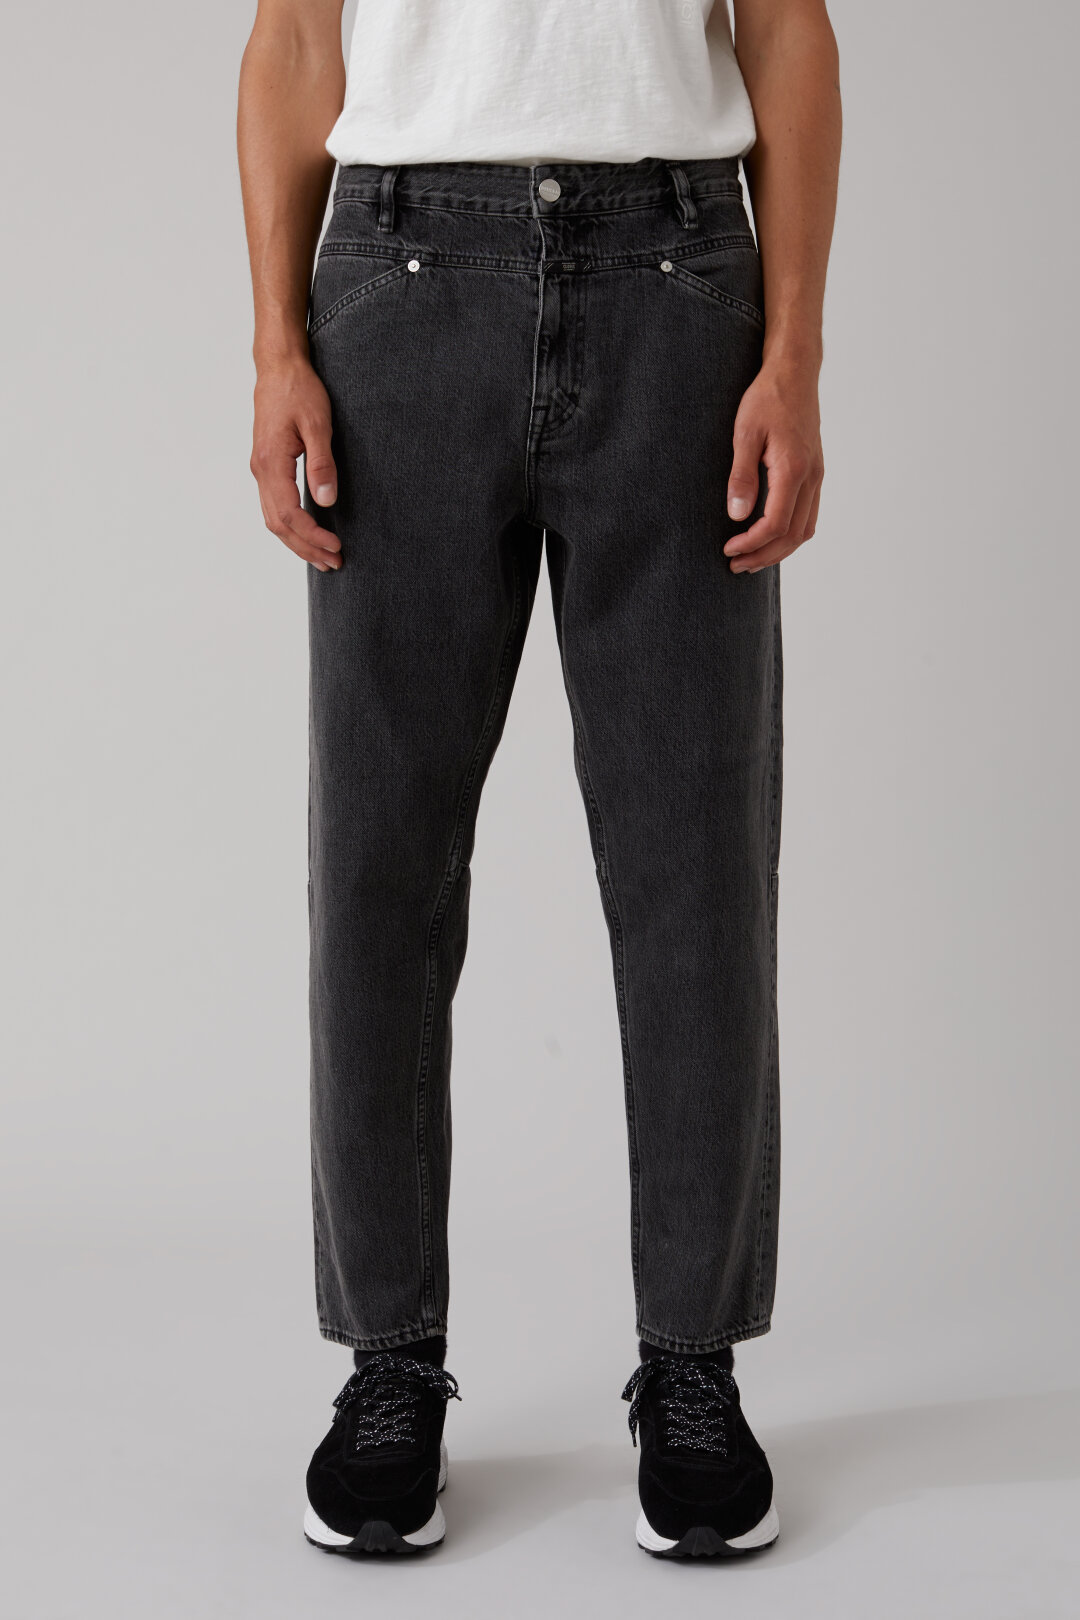 United Arrows Jeans